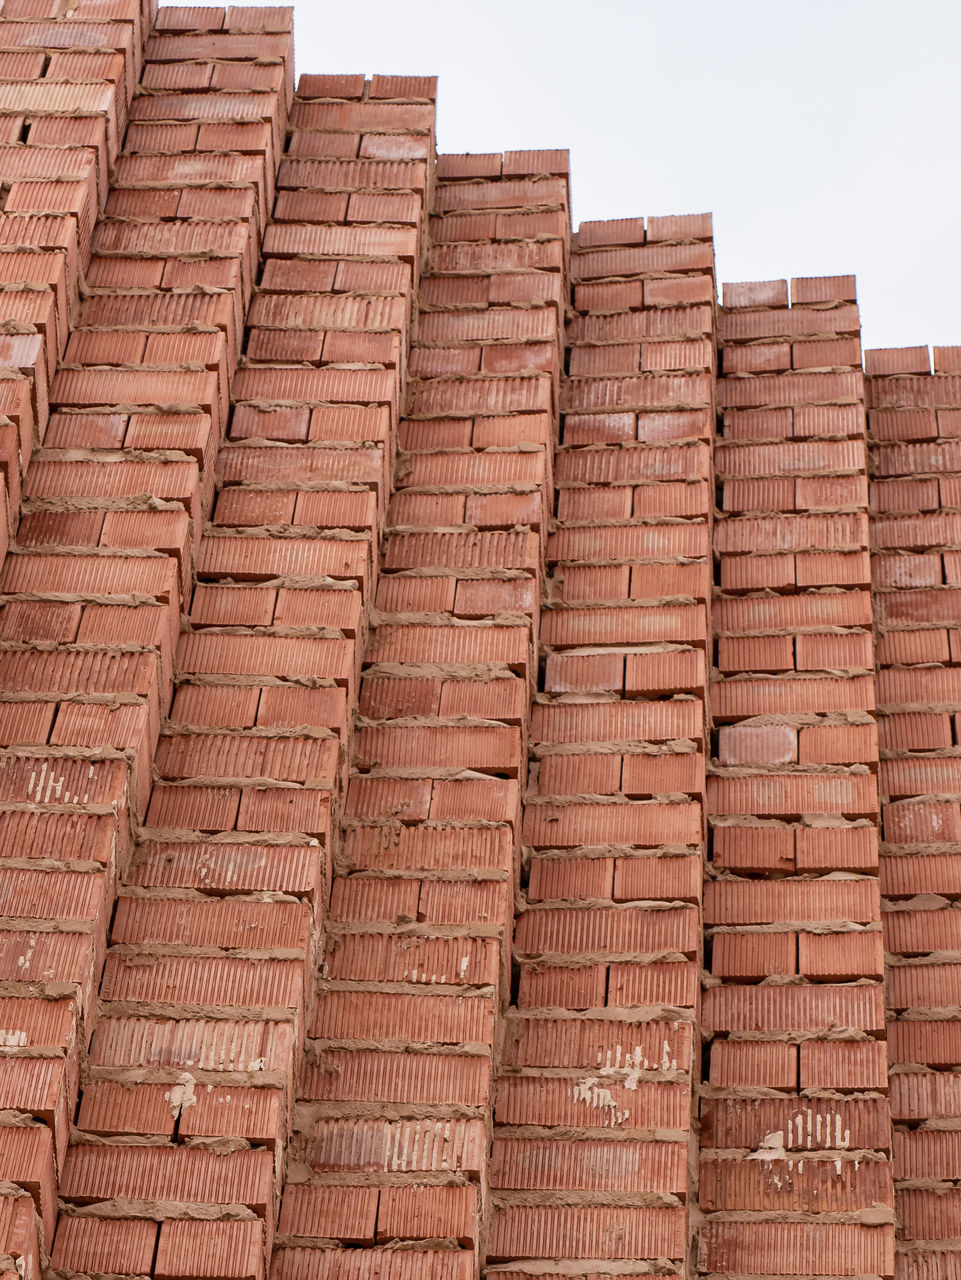 LOW ANGLE VIEW OF BRICK WALL AGAINST BUILDING